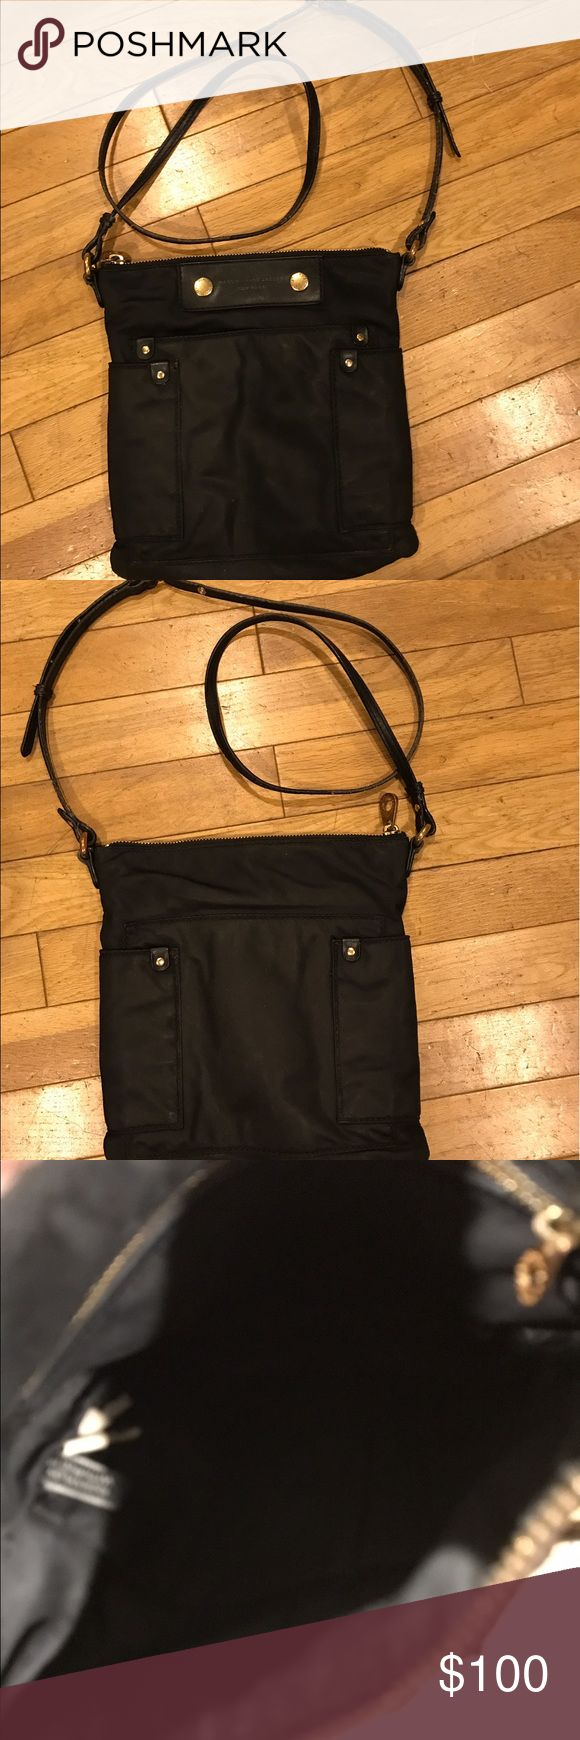 Marc by Marc Jacobs purse Marc by Marc Jacobs purse is in good condition. Open to offers Marc by Marc Jacobs Bags Crossbody Bags